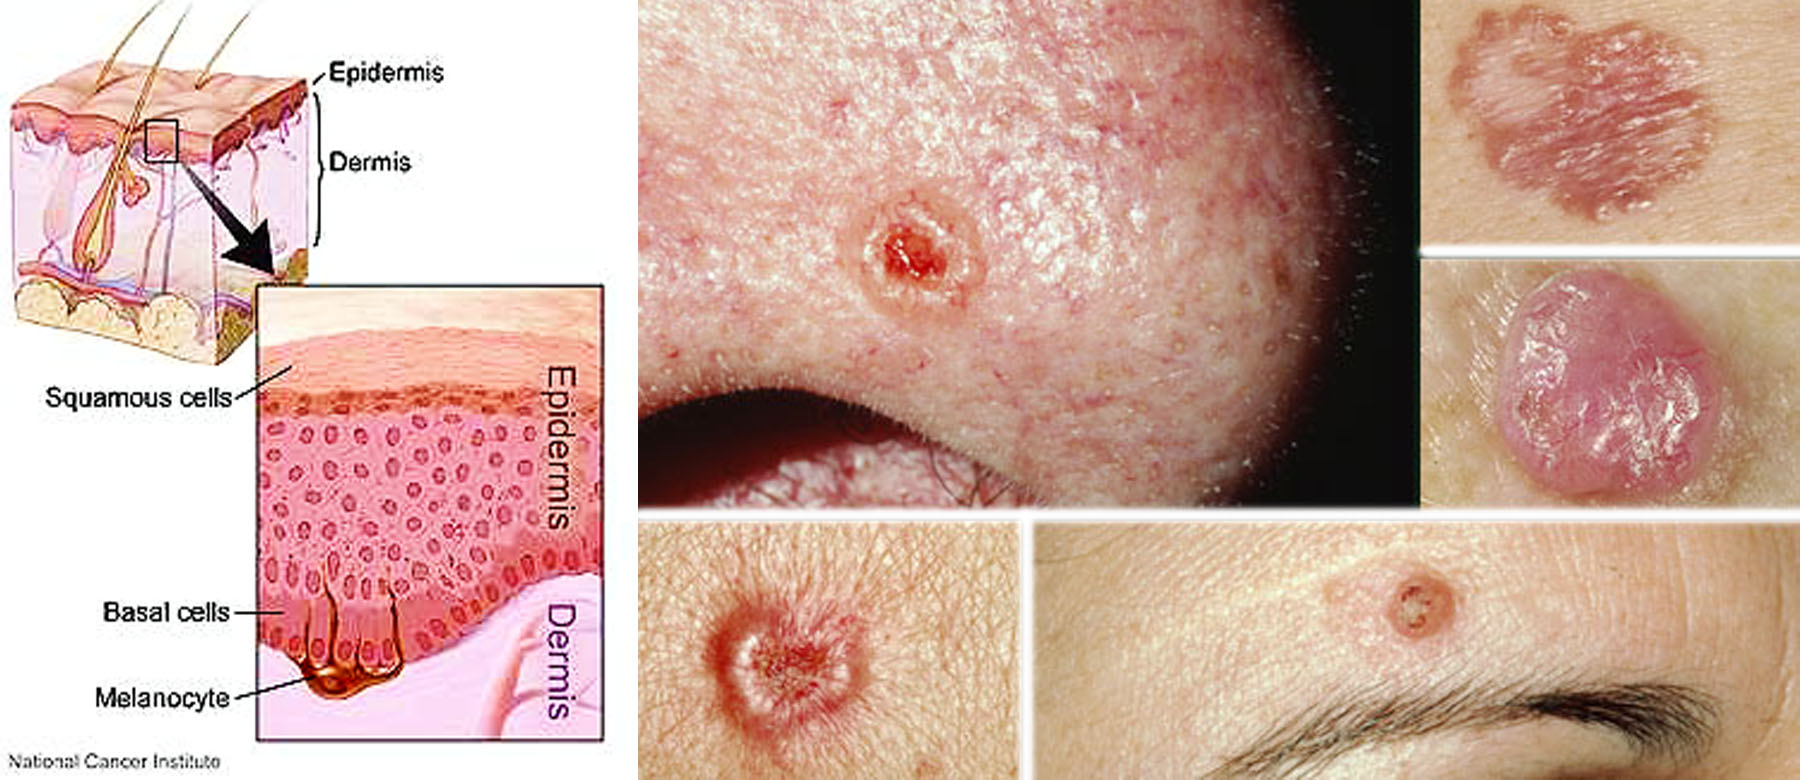 Skin Cancer (Nonmelanoma Skin Cancer or Keratinocyte Cancer)